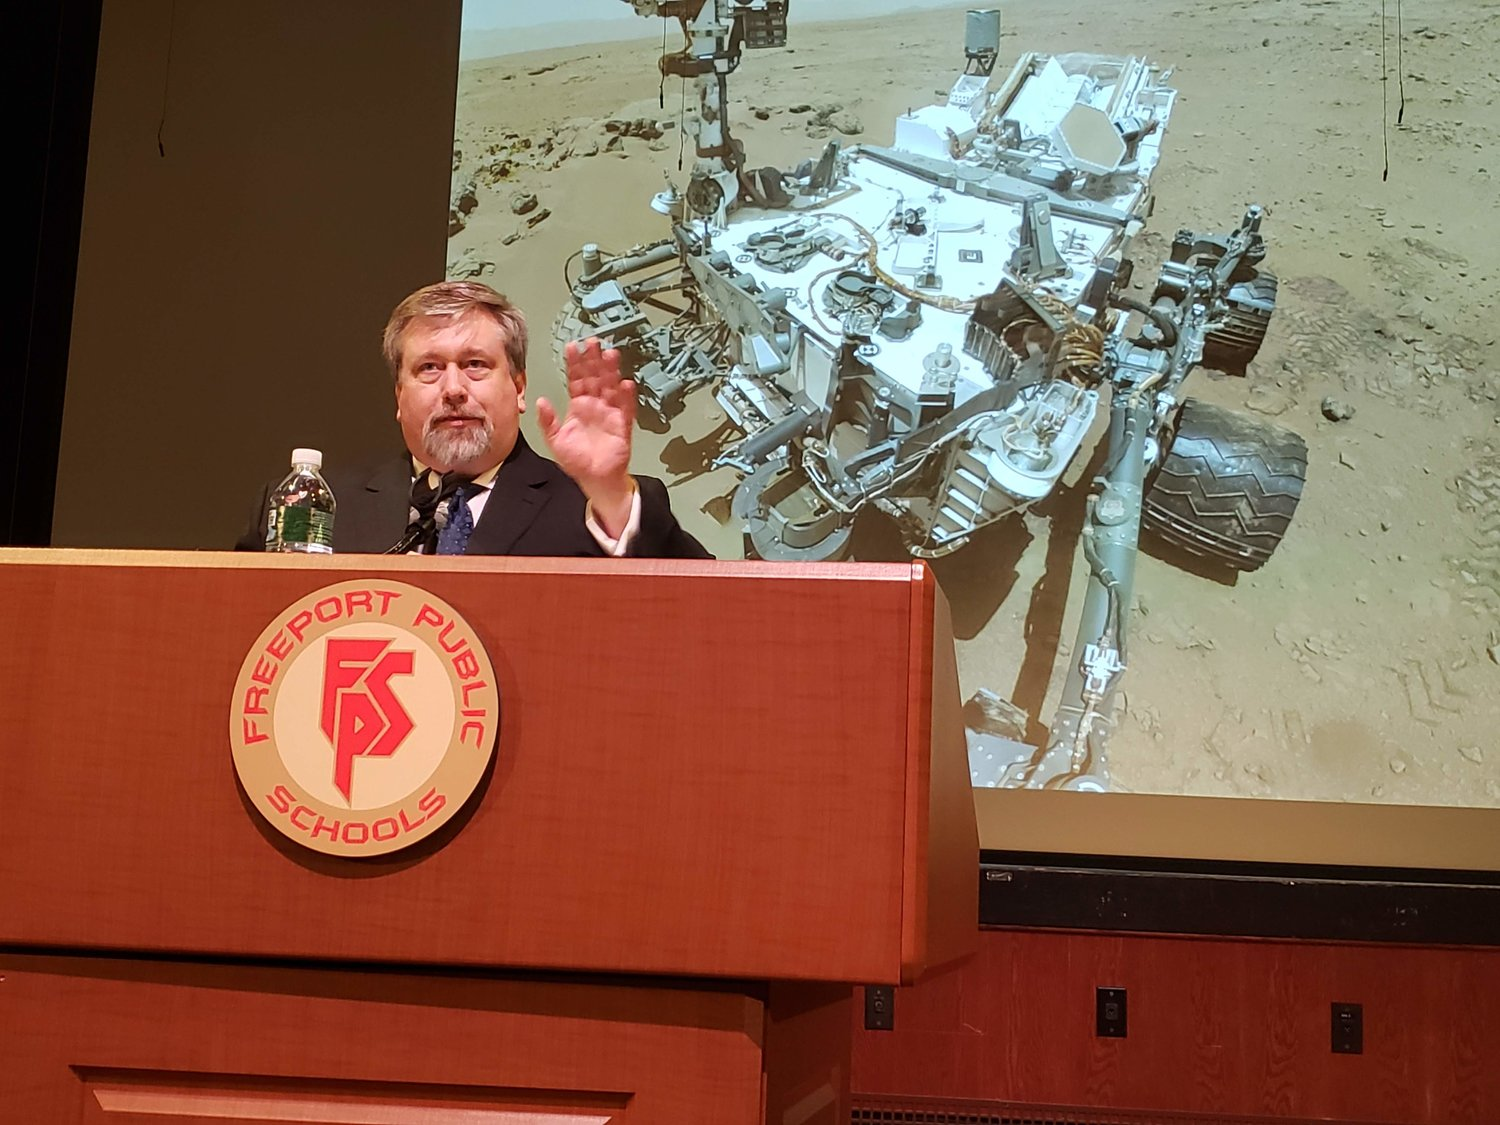 Peck displayed photos of the Mars Rover during an assembly at Freeport High's Performing Arts Center.